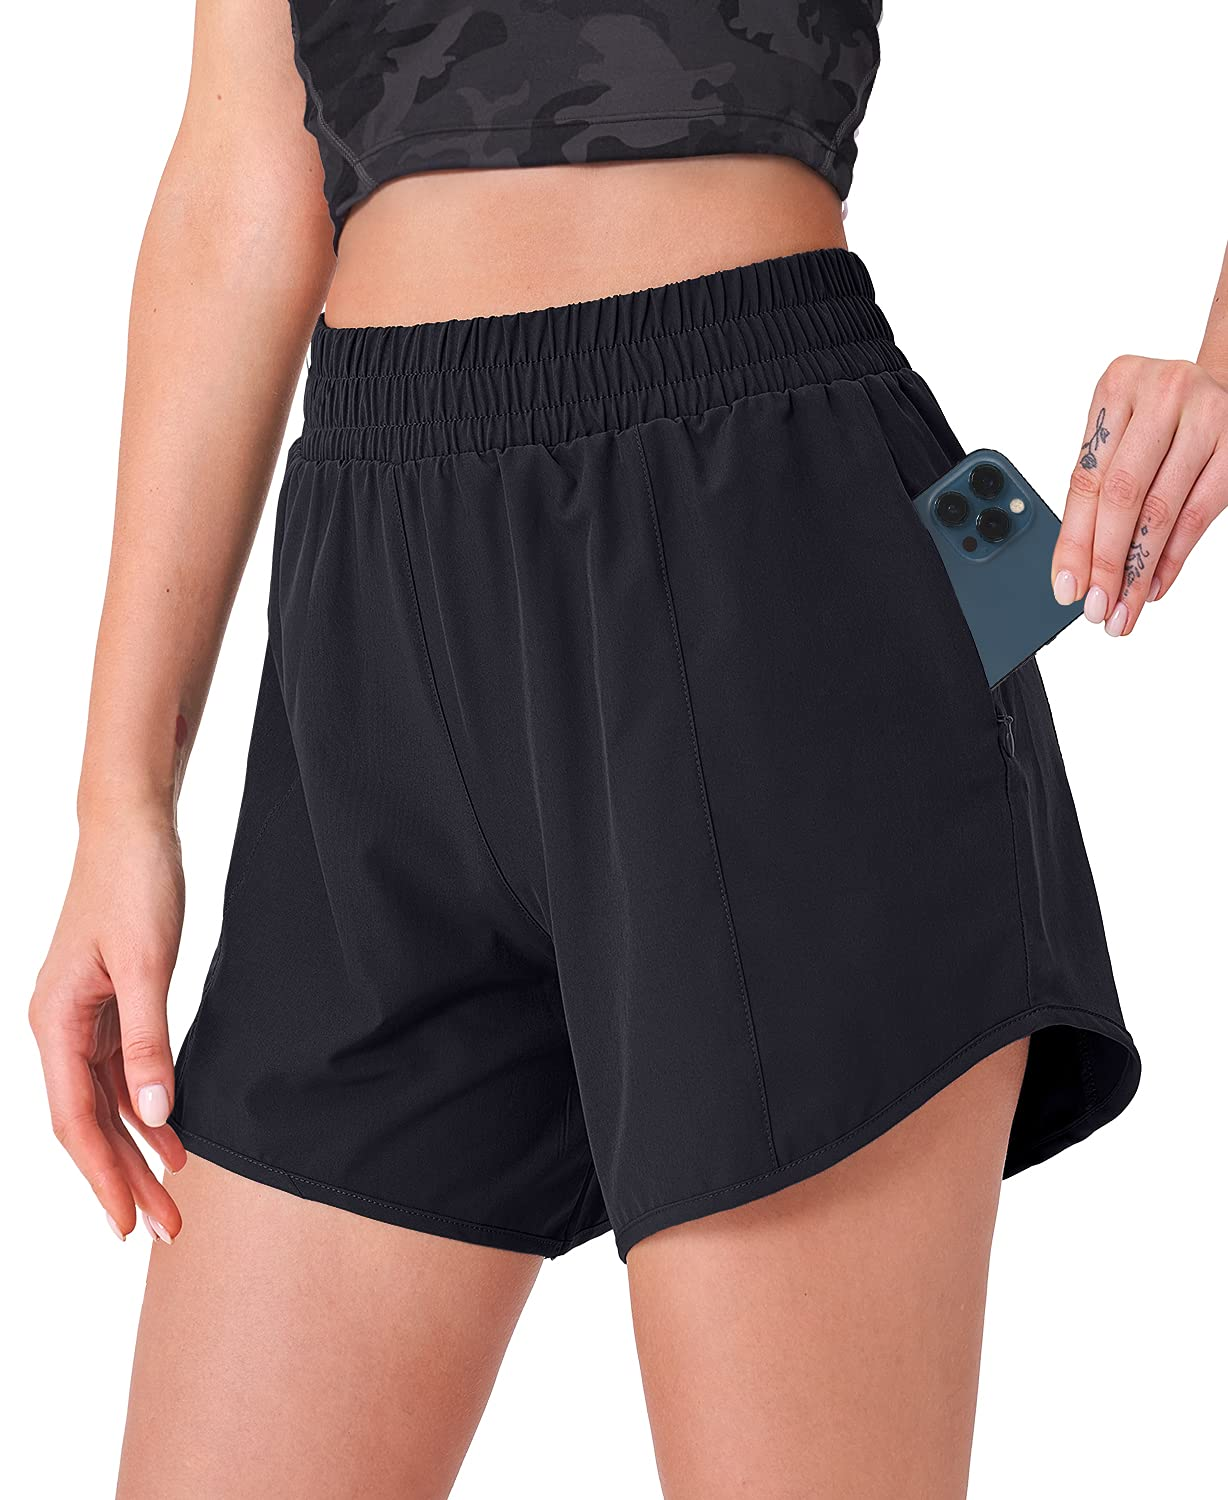 CELER Womens Running Shorts Quick Dry Workout Shorts with Phone Pocket Elastic